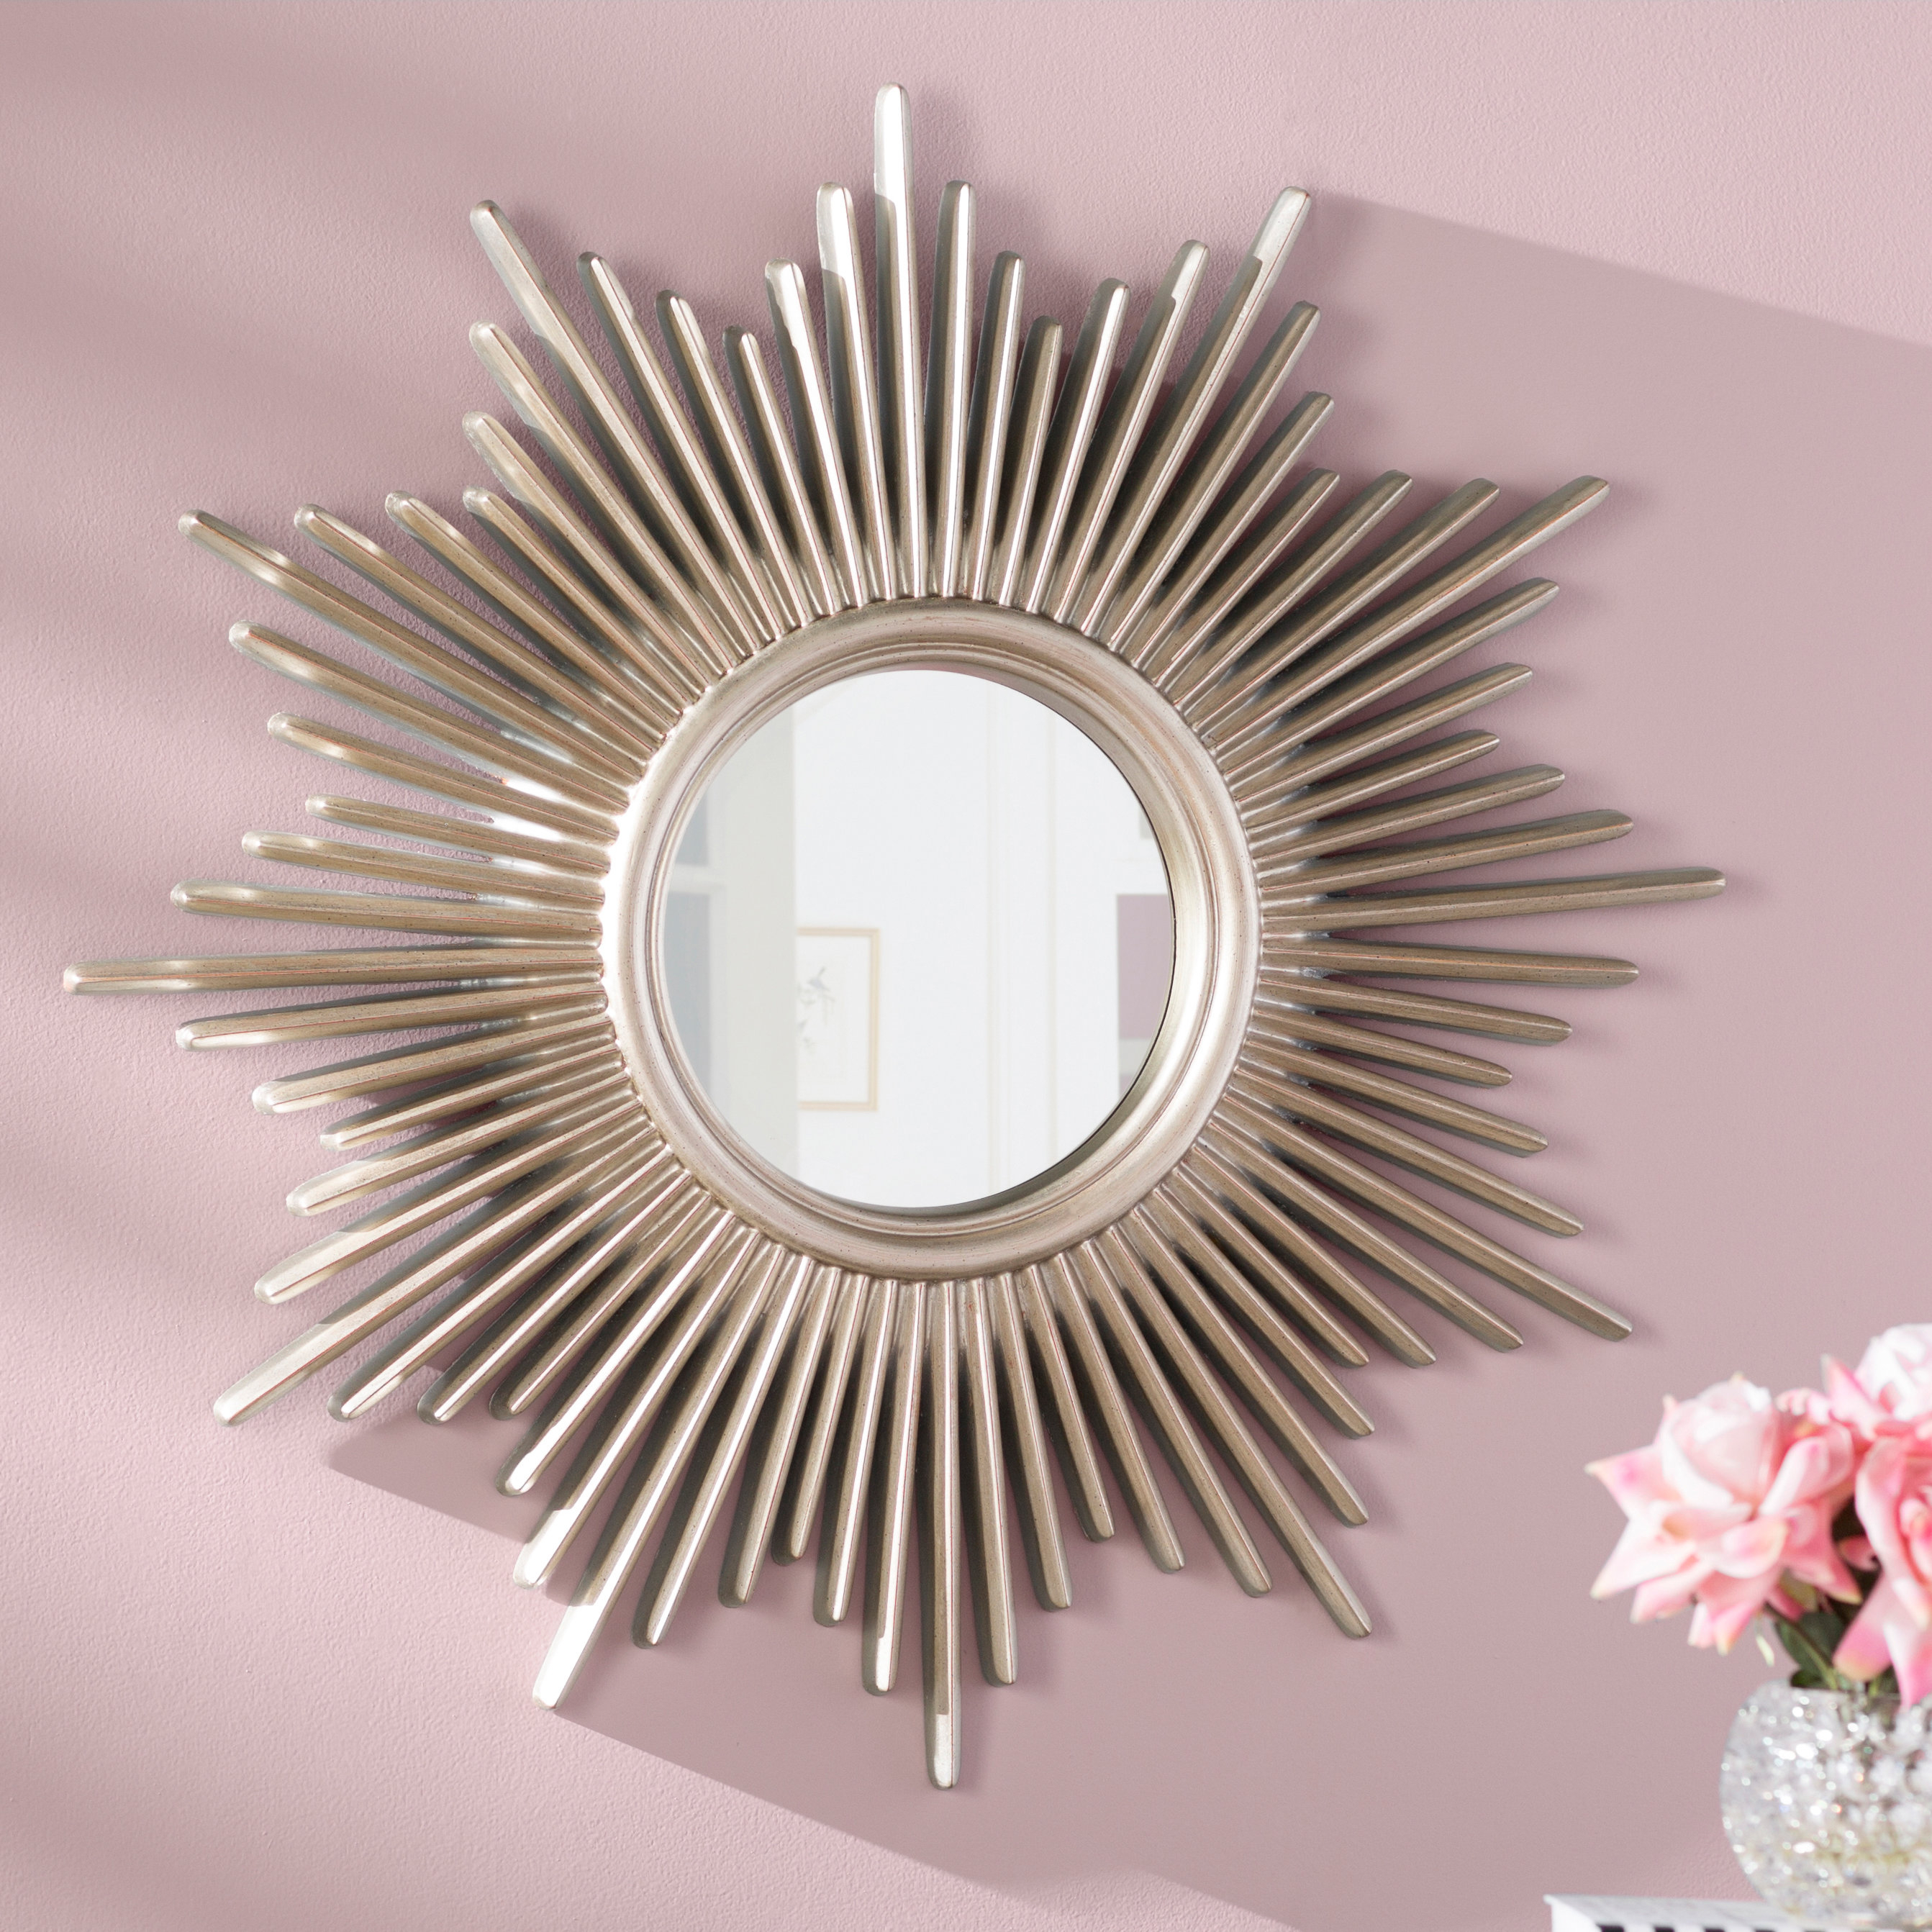 Josephson Starburst Glam Beveled Accent Wall Mirror Inside Brynn Accent Mirrors (View 13 of 30)